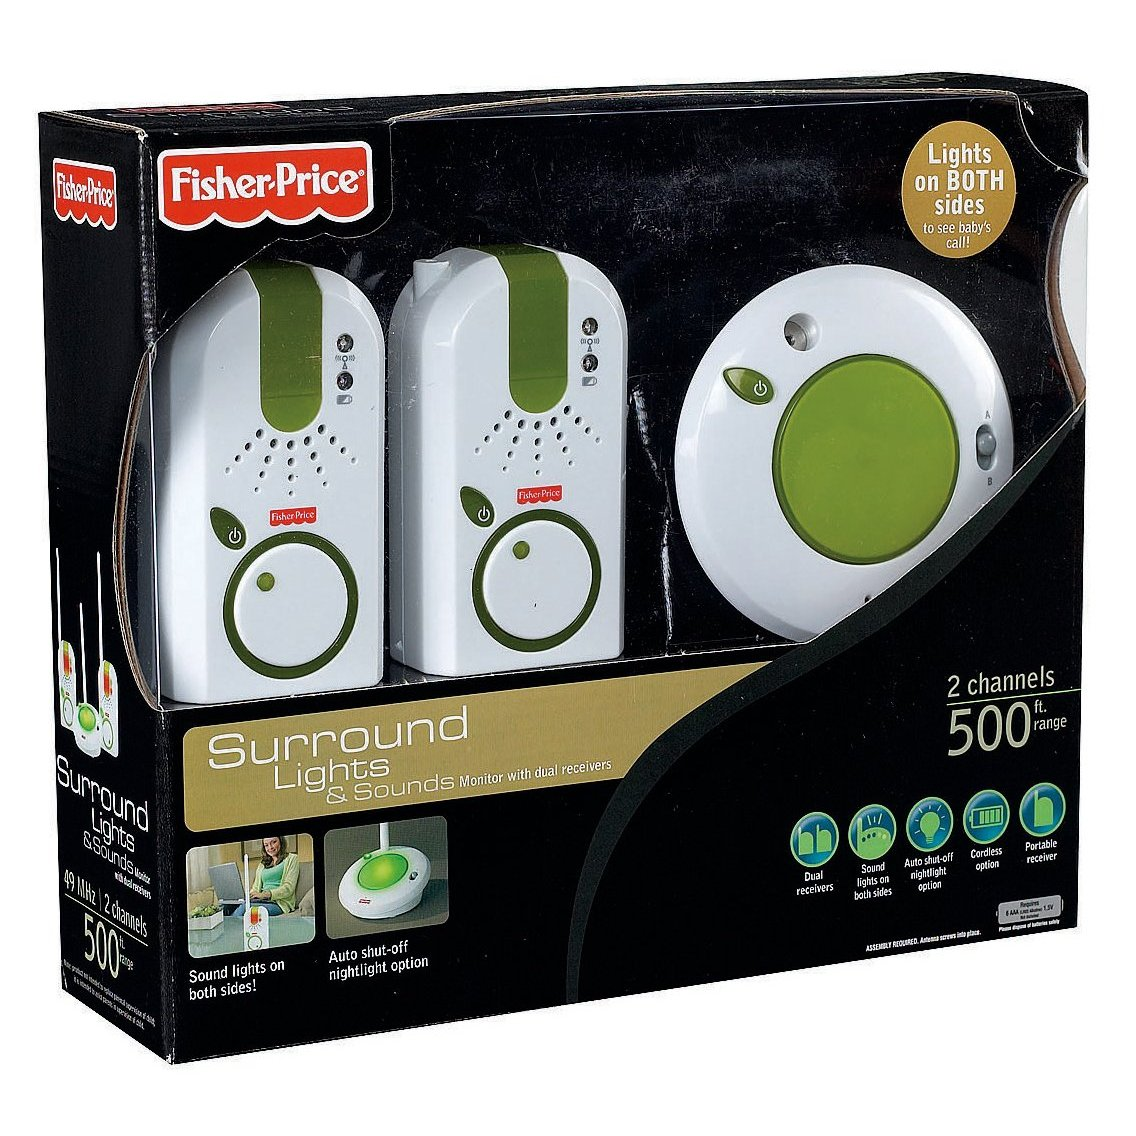 BABA ELETRONICA FISHER PRICE SUNROUND LIGHTS & SOUNDS MONITOR WITH DUAS RECEIVERS